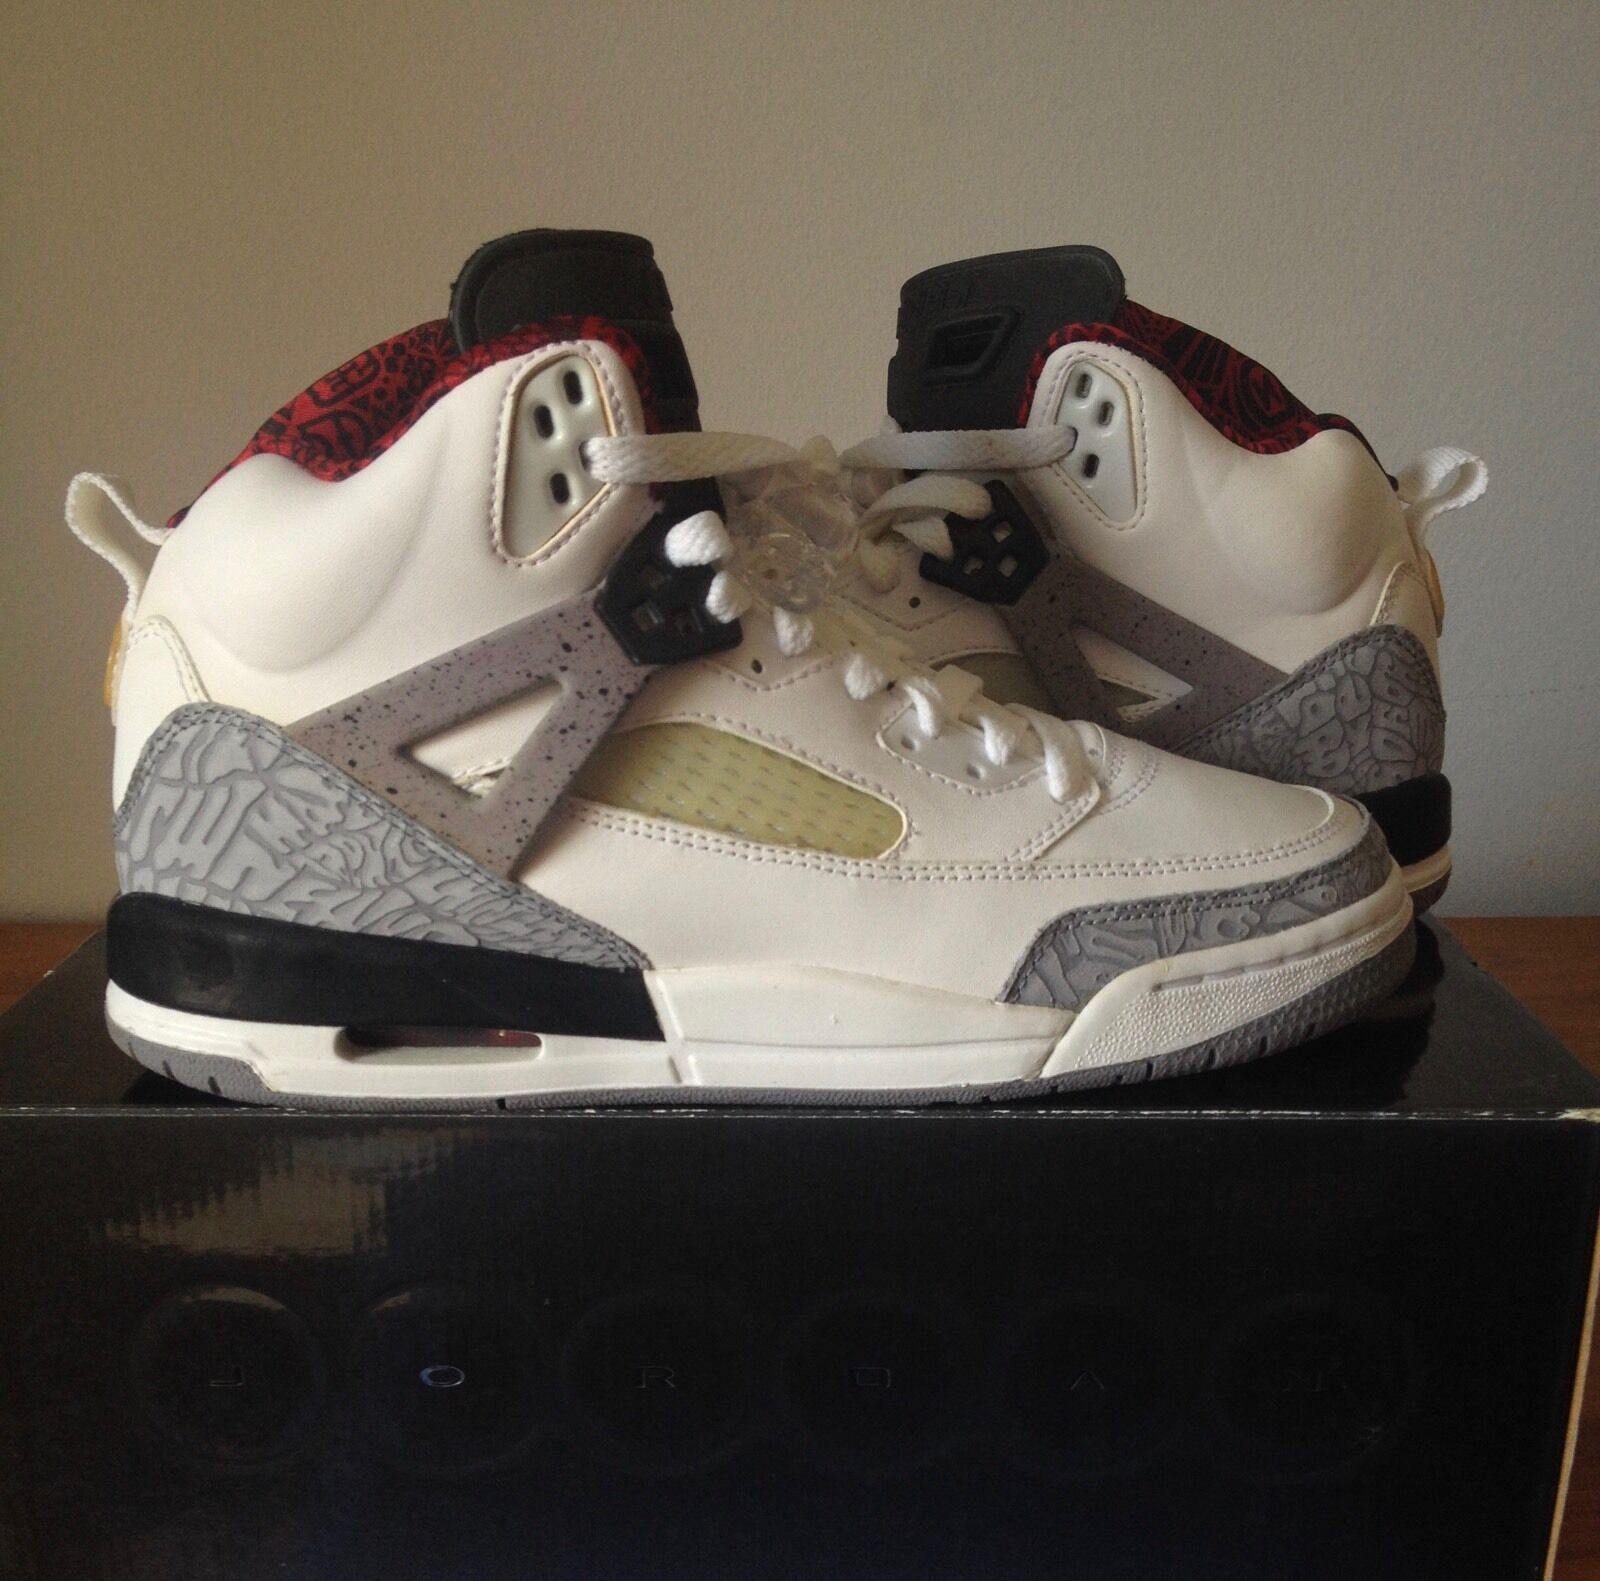 RARE Nike Air Jordan Spizike White Cement Gray Red Black Sz 7Y 317321-101